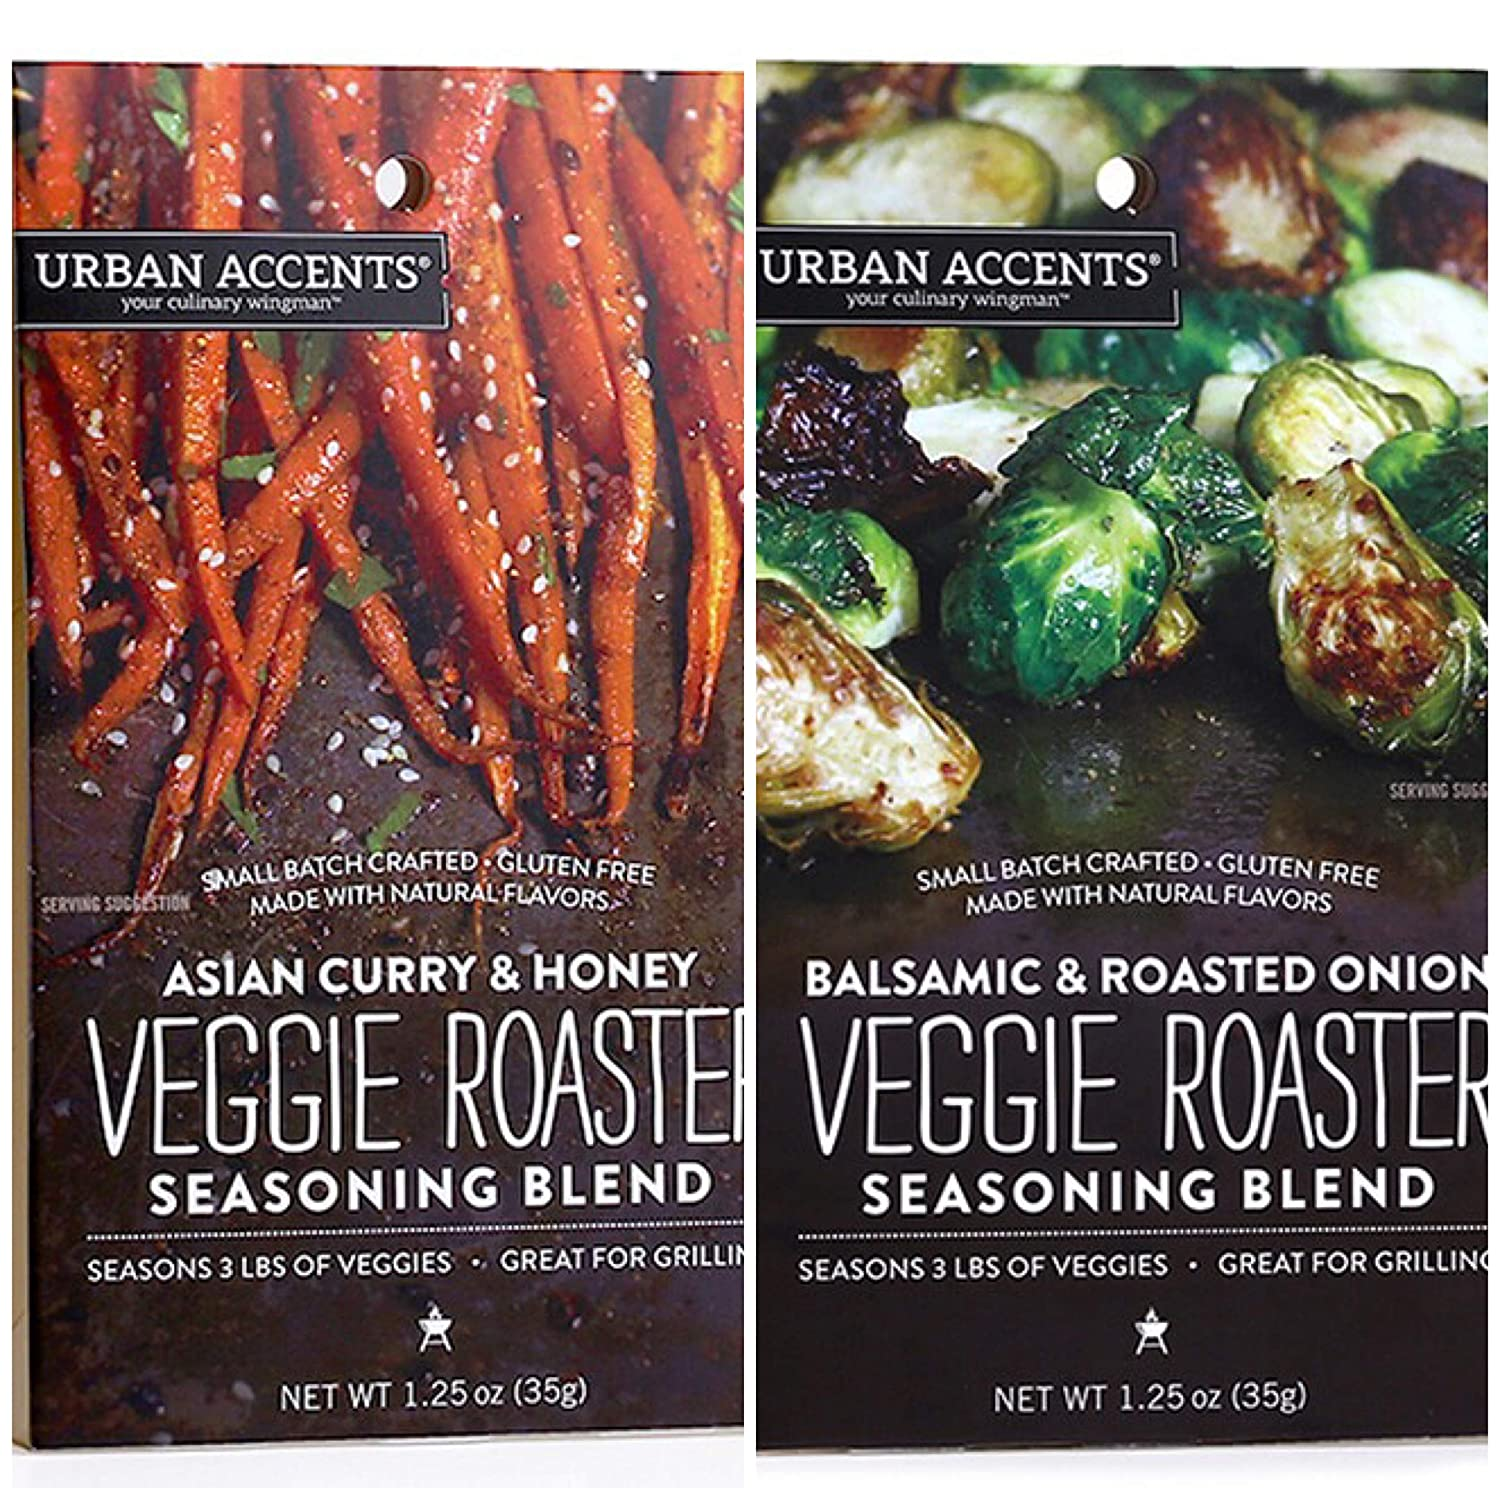 Urban Accents Veggie Roasters - 2 Flavors - Asian Curry & Honey Veggie Roaster AND Balsamic & Roasted Onion Veggie Roaster - GLUTEN-FREE